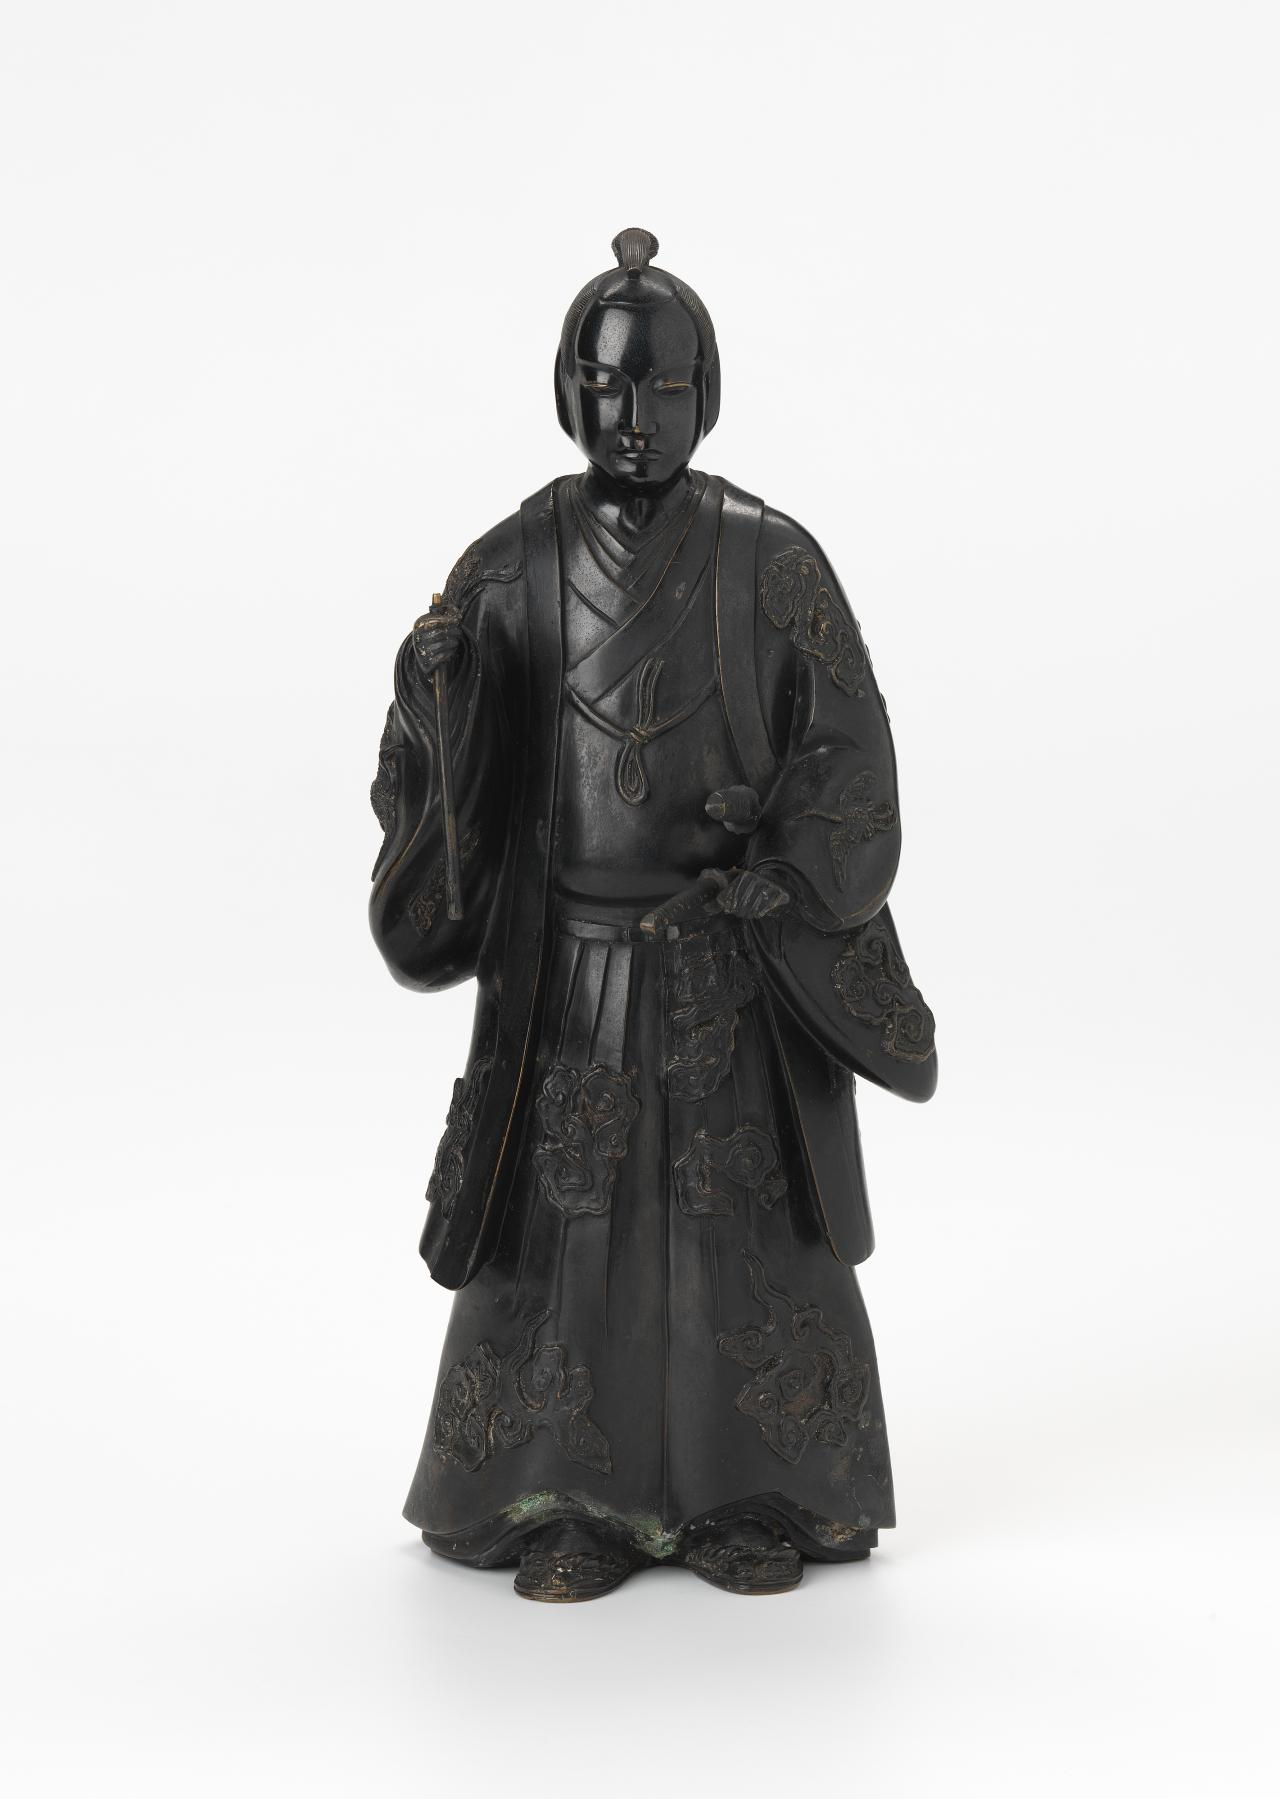 Statuette of an officer